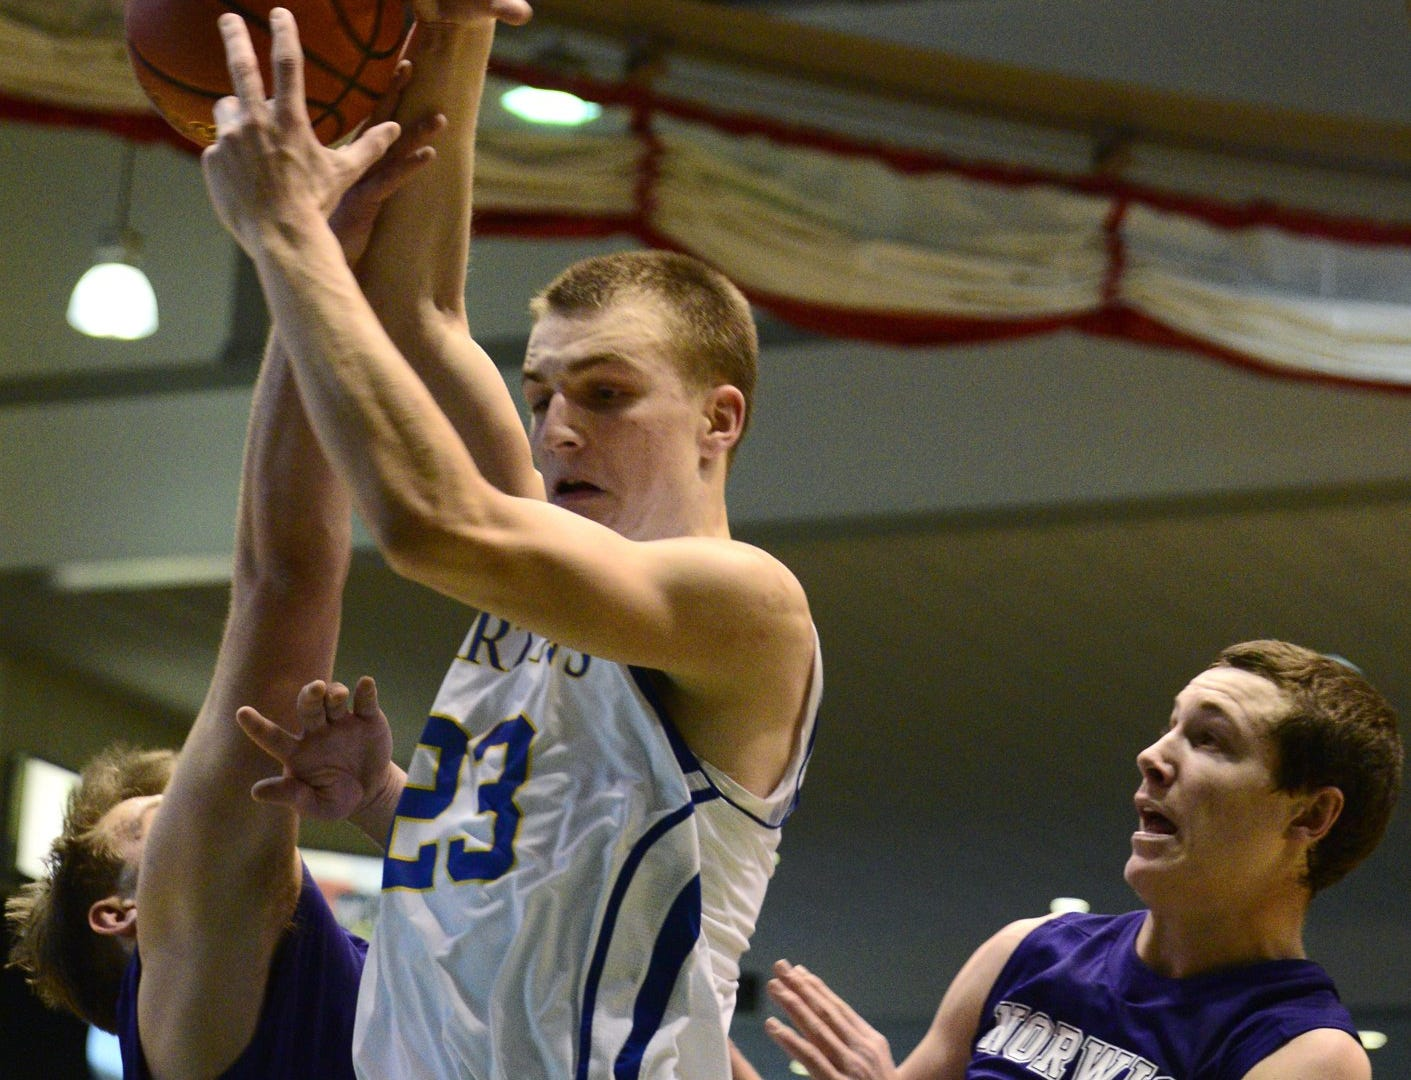 2013: Kyle Gallagher of Maine-Endwell gets a rebound during Sunday's STAC boys title game against Norwich. Gallagher finished with 23 points as the Spartans won 51-46 at Binghamton University's Events Center.